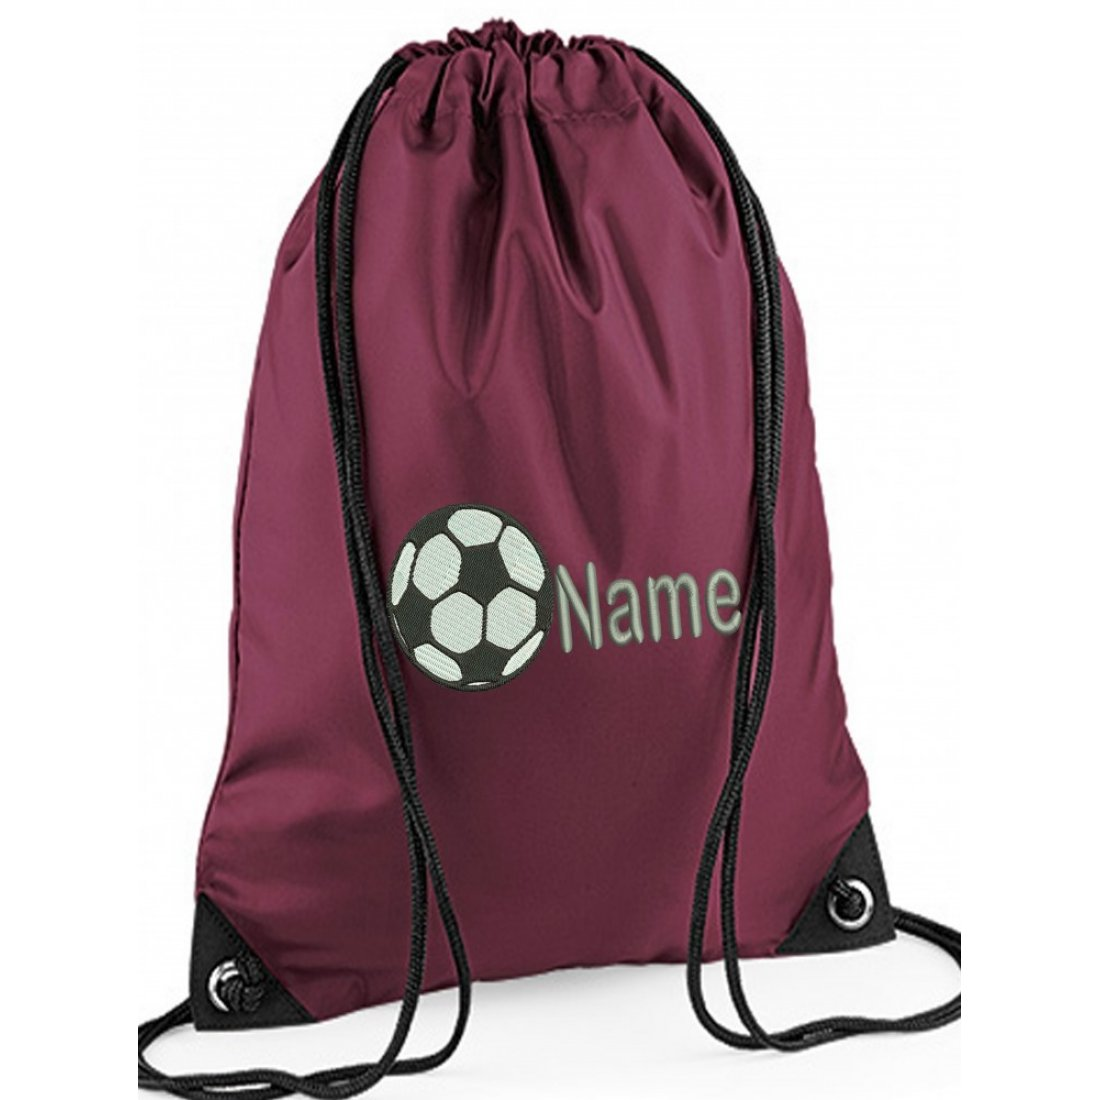 Unisex Personalised Football Gym bag, Embroidered To Order